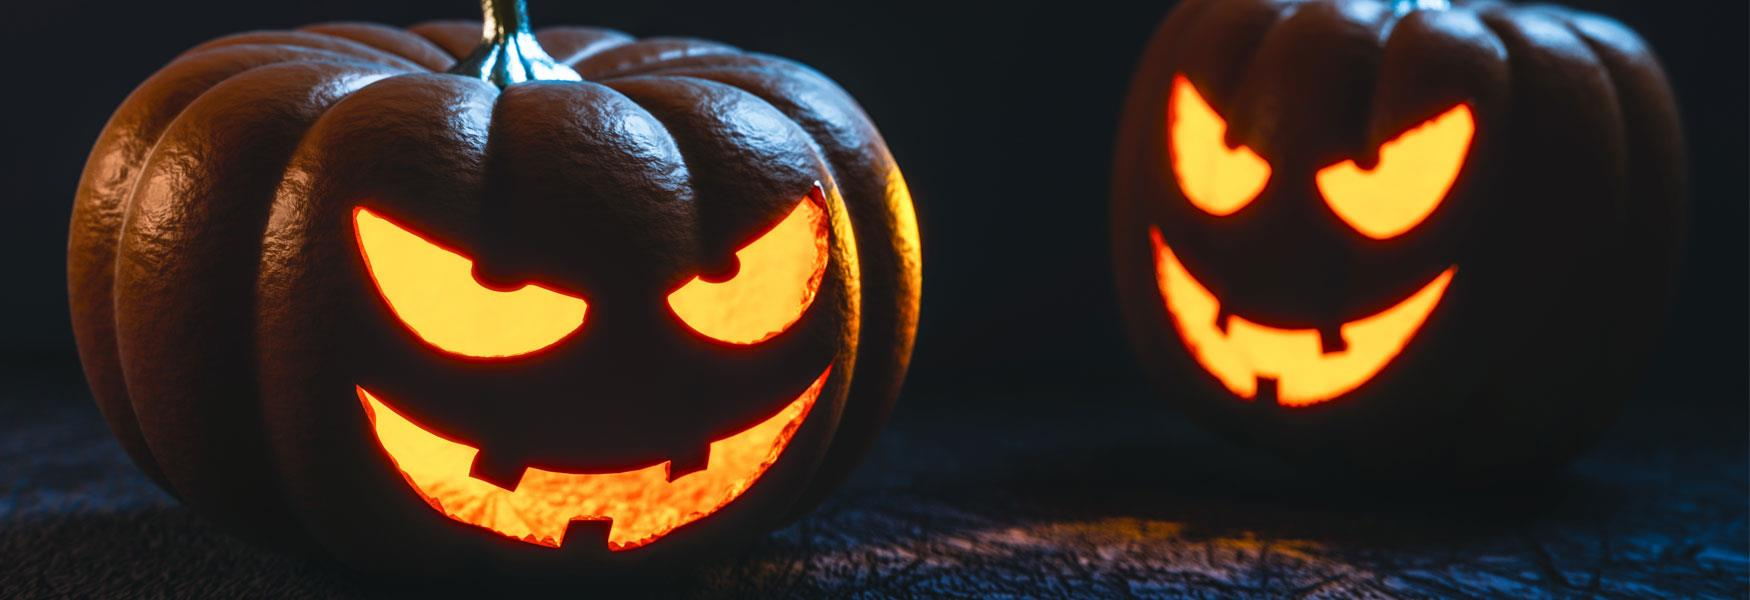 Halloween Events in and around Maidstone